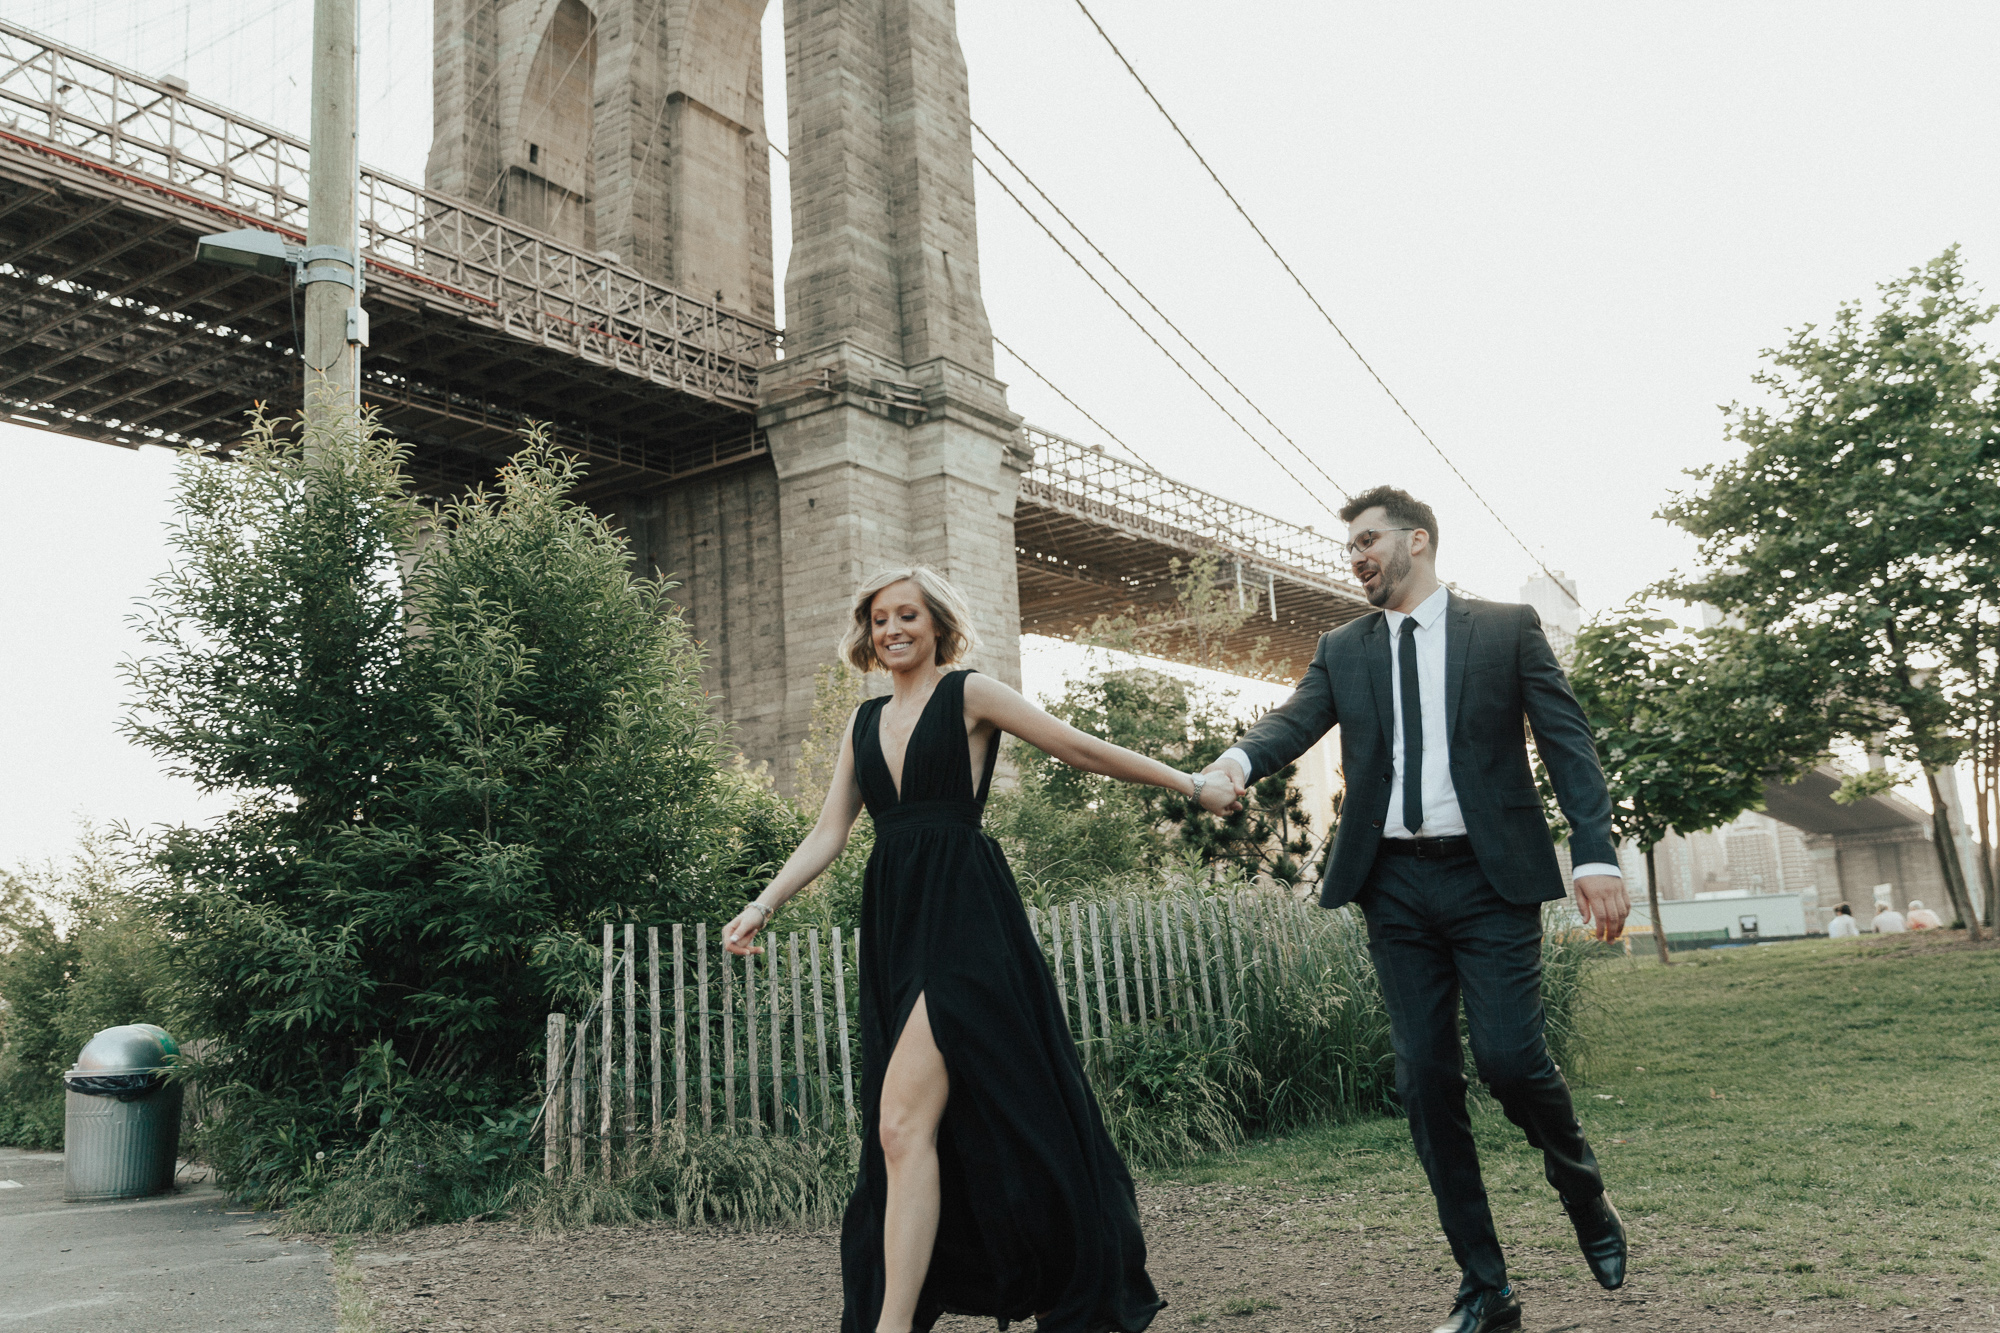 brooklyn_nyc_engagement_photography-58-of-83.jpg